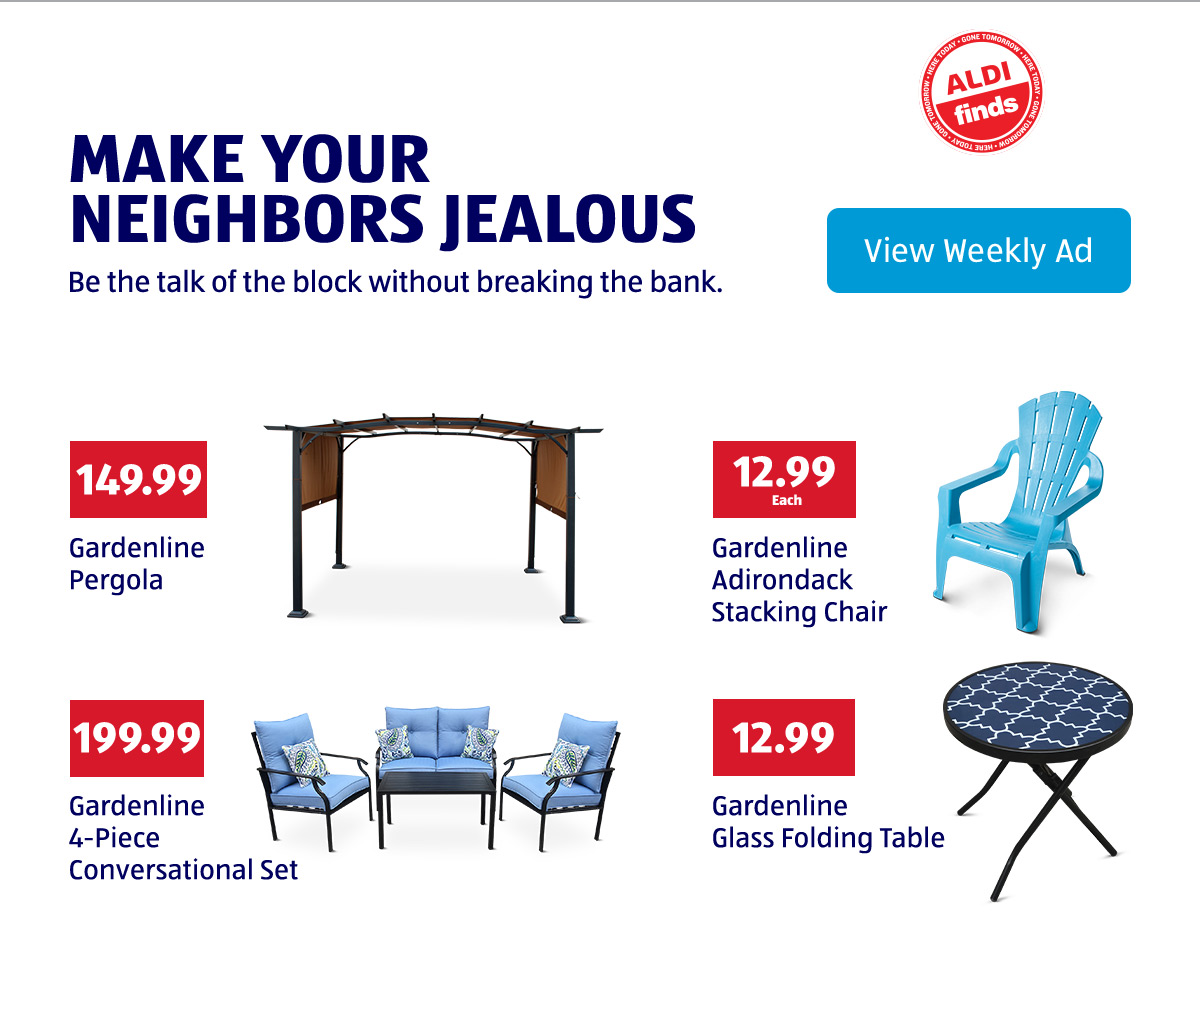 Make Your Neighbors Jealous. Be the talk of the block without breaking the bank. View Weekly Ad.